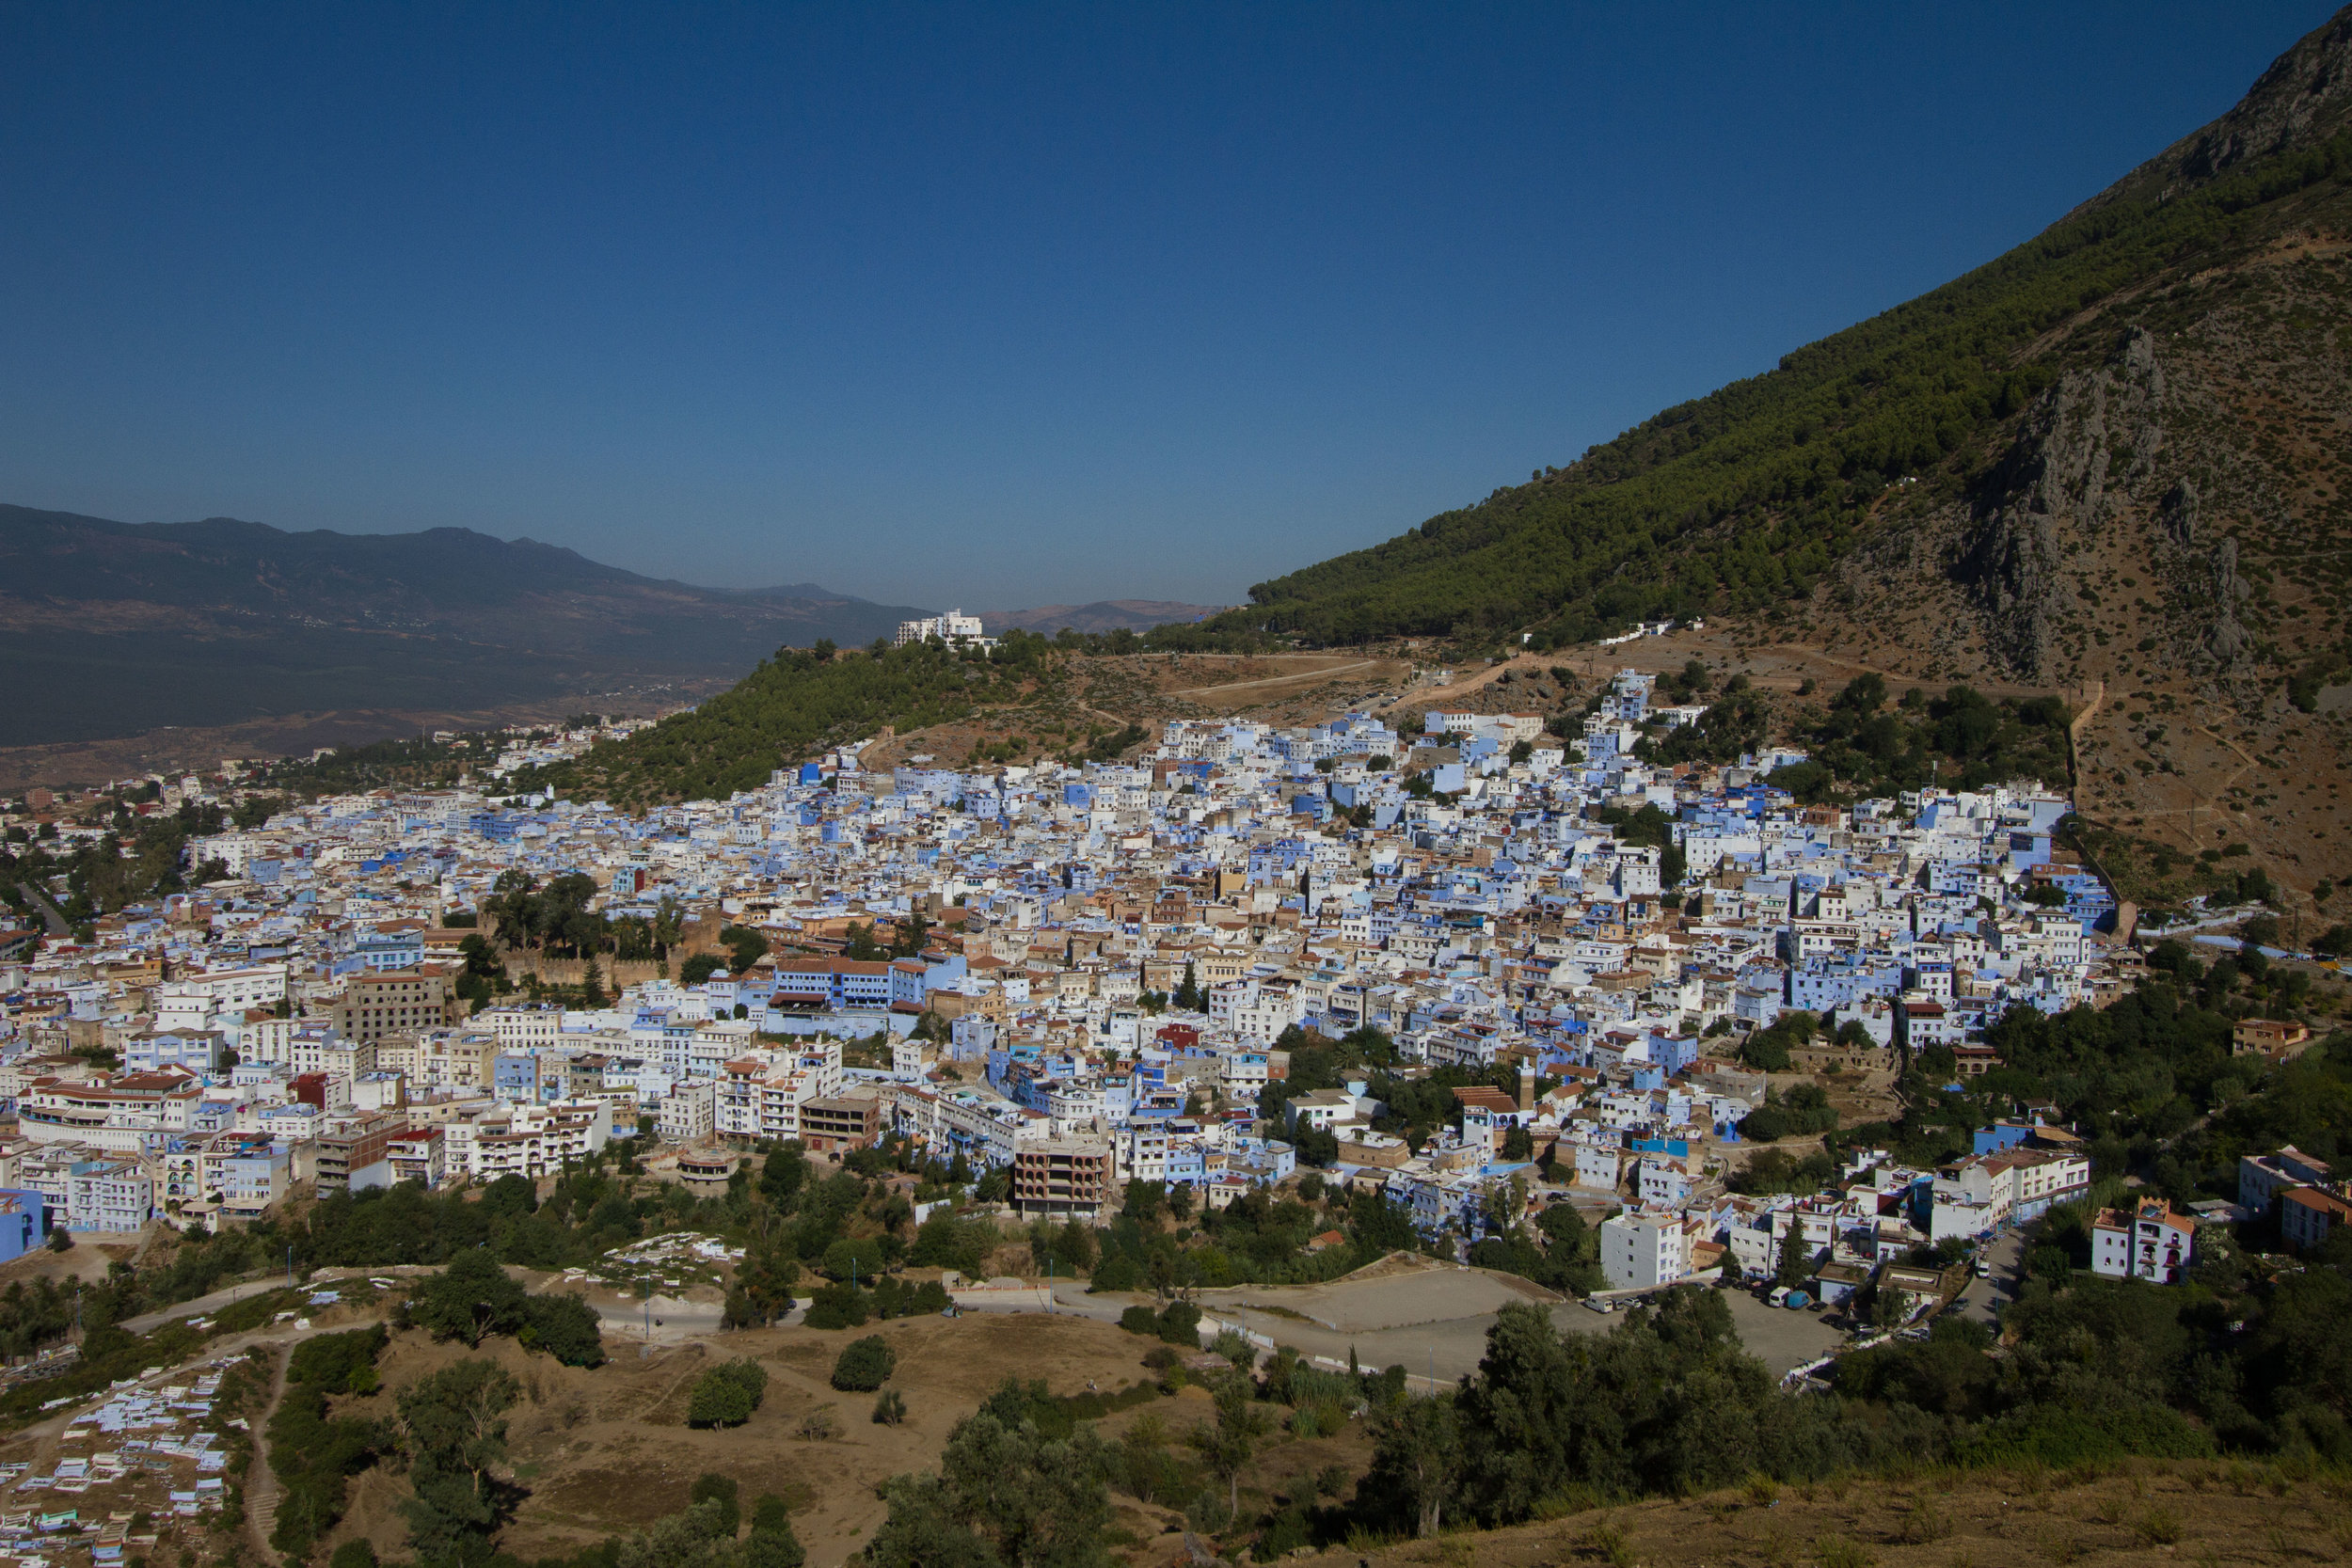 View of Chefchaouen at the nearby mountain top